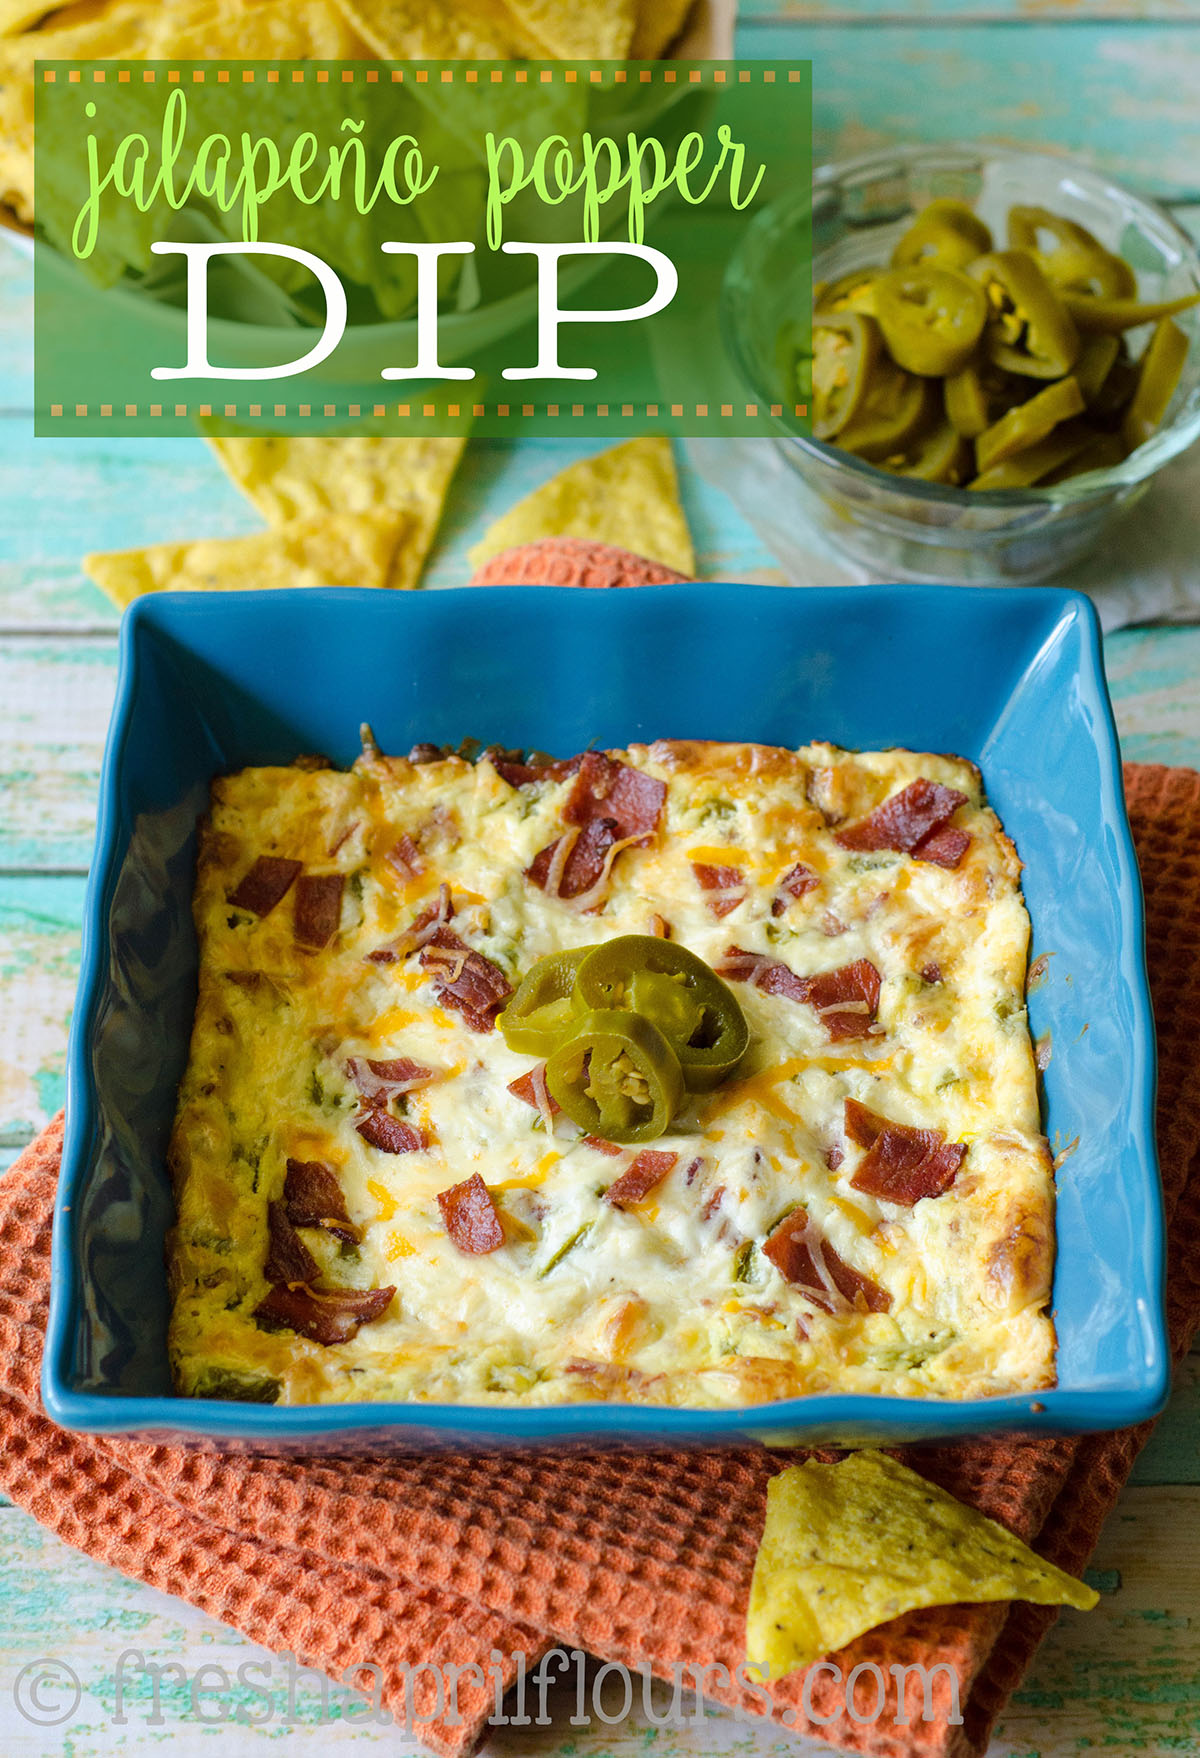 Jalapeño Popper Dip: Cheesy, creamy, spicy jalapeño popper dip is the perfect appetizer or side for any Mexican dish. Serve with chips, vegetables, or as a topping.